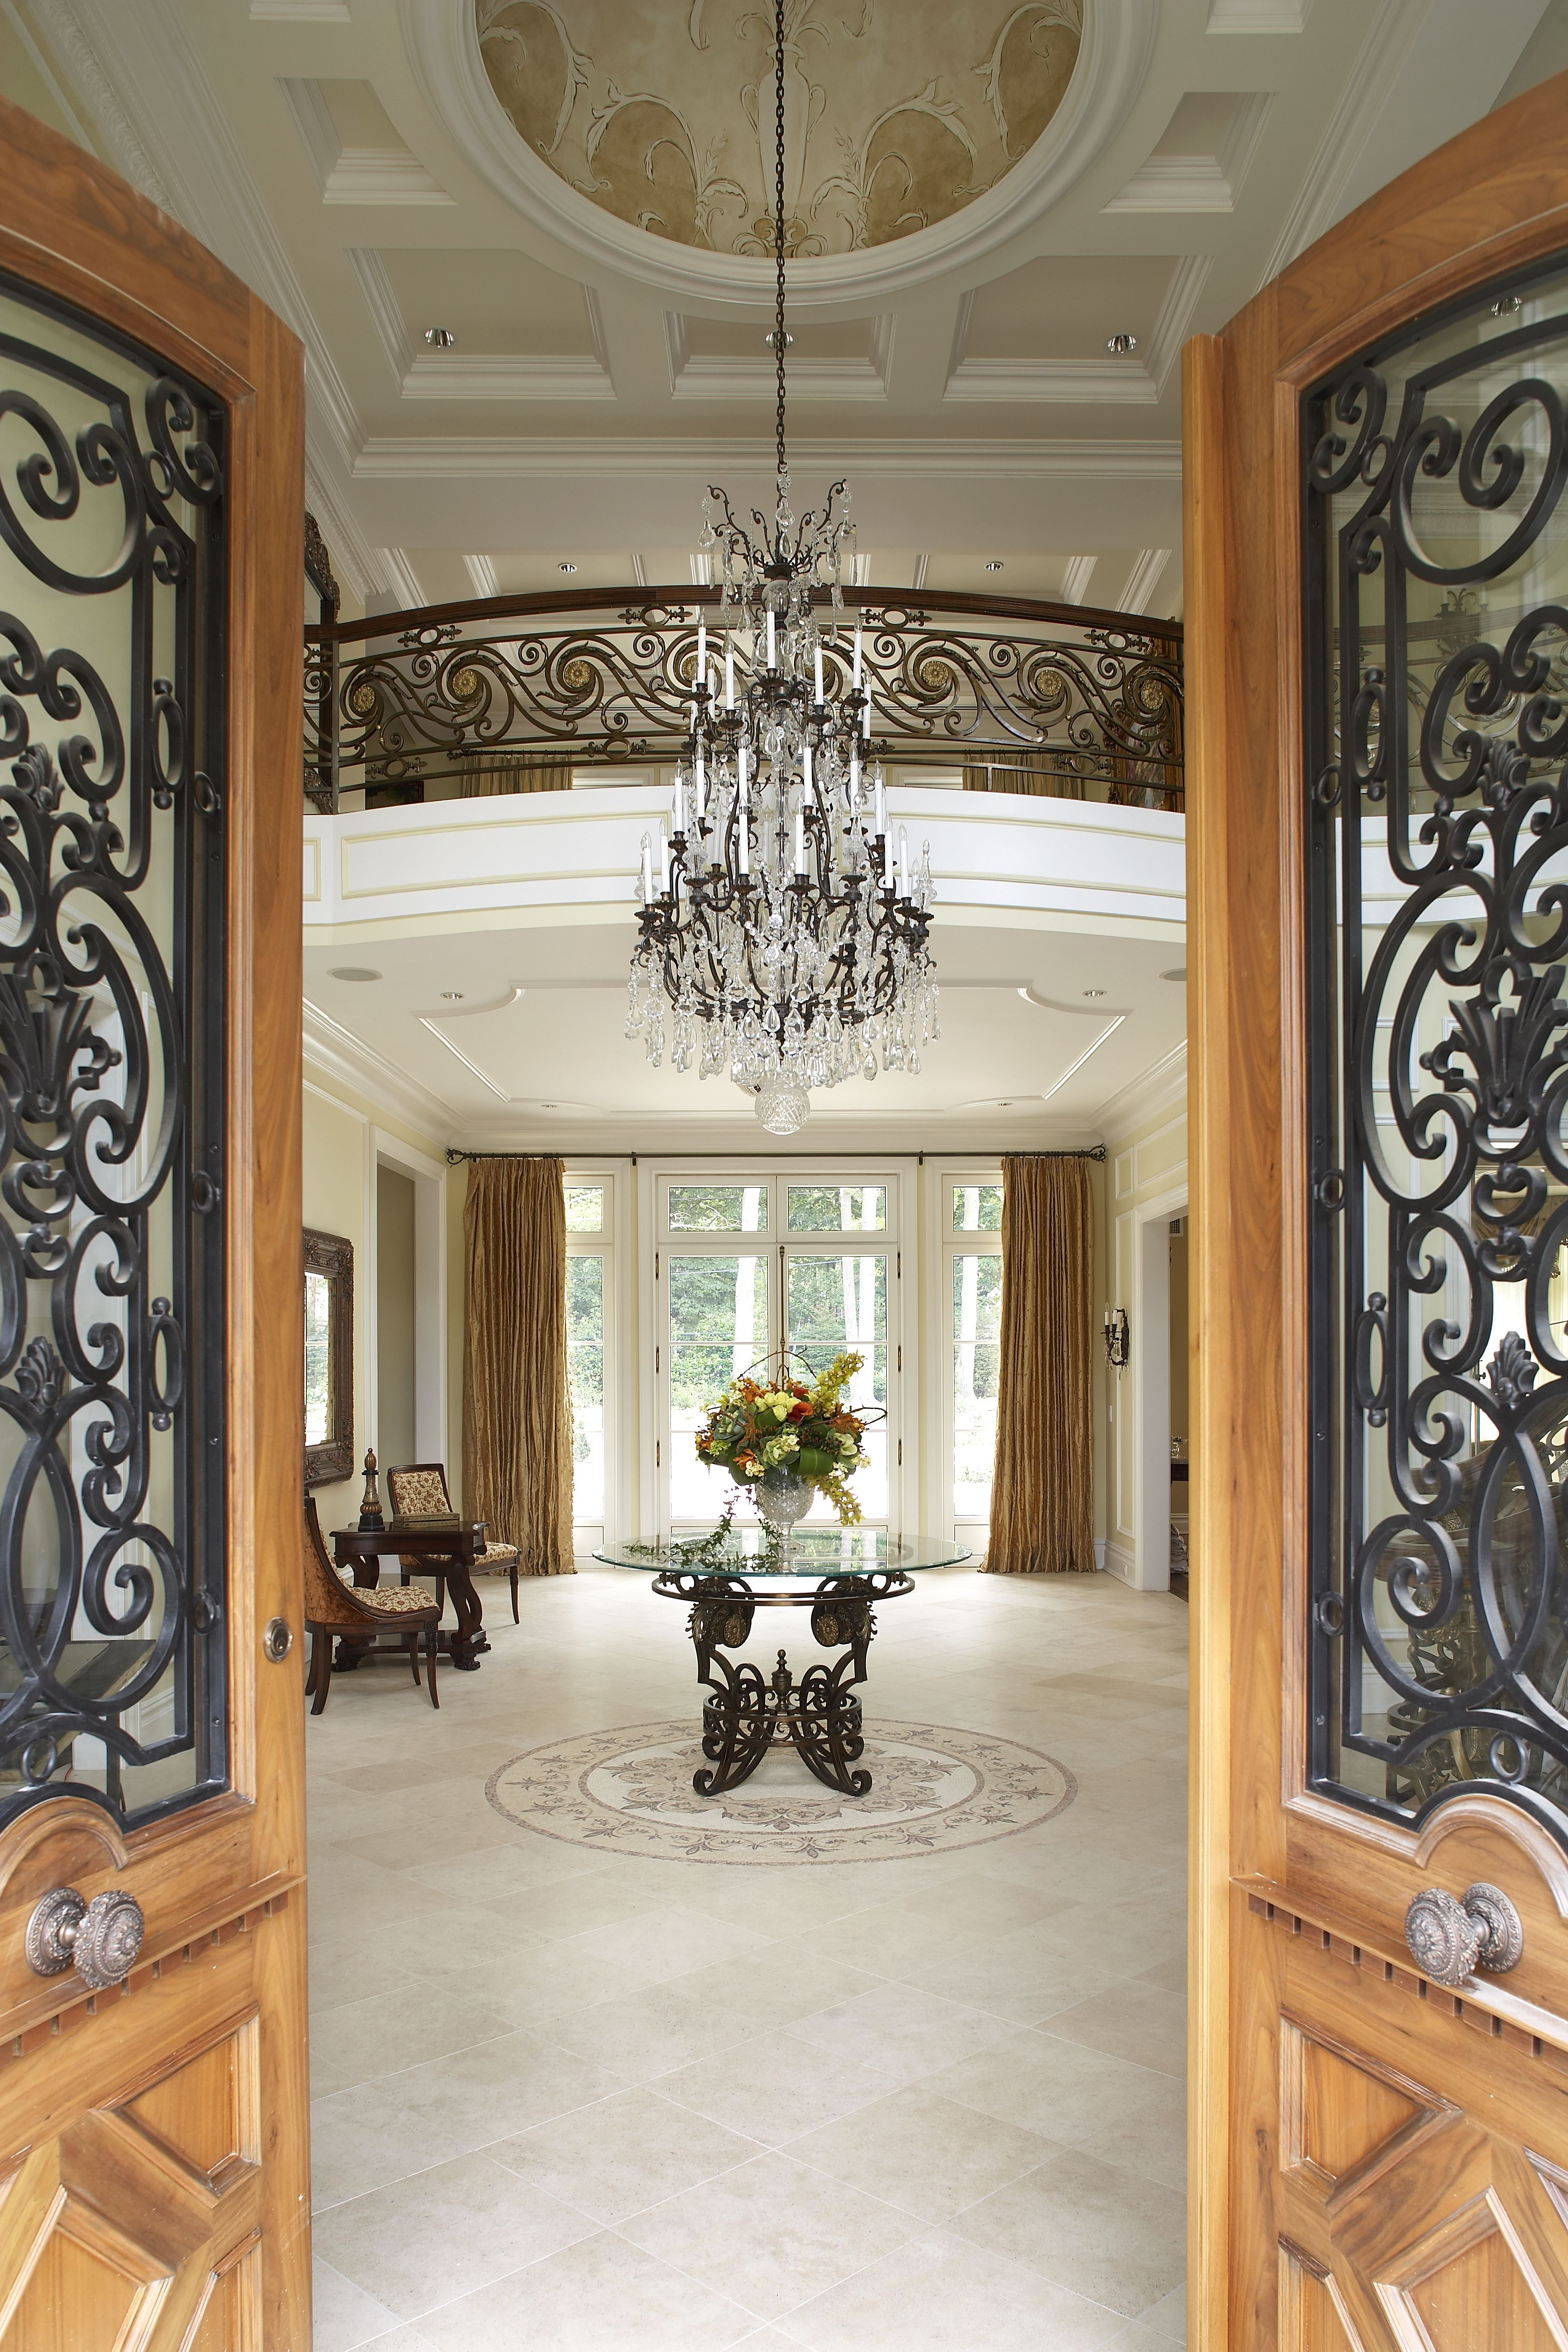 Beautiful Home Entrances Luxury Entryway Decors With Glass Chandelier Over Antique